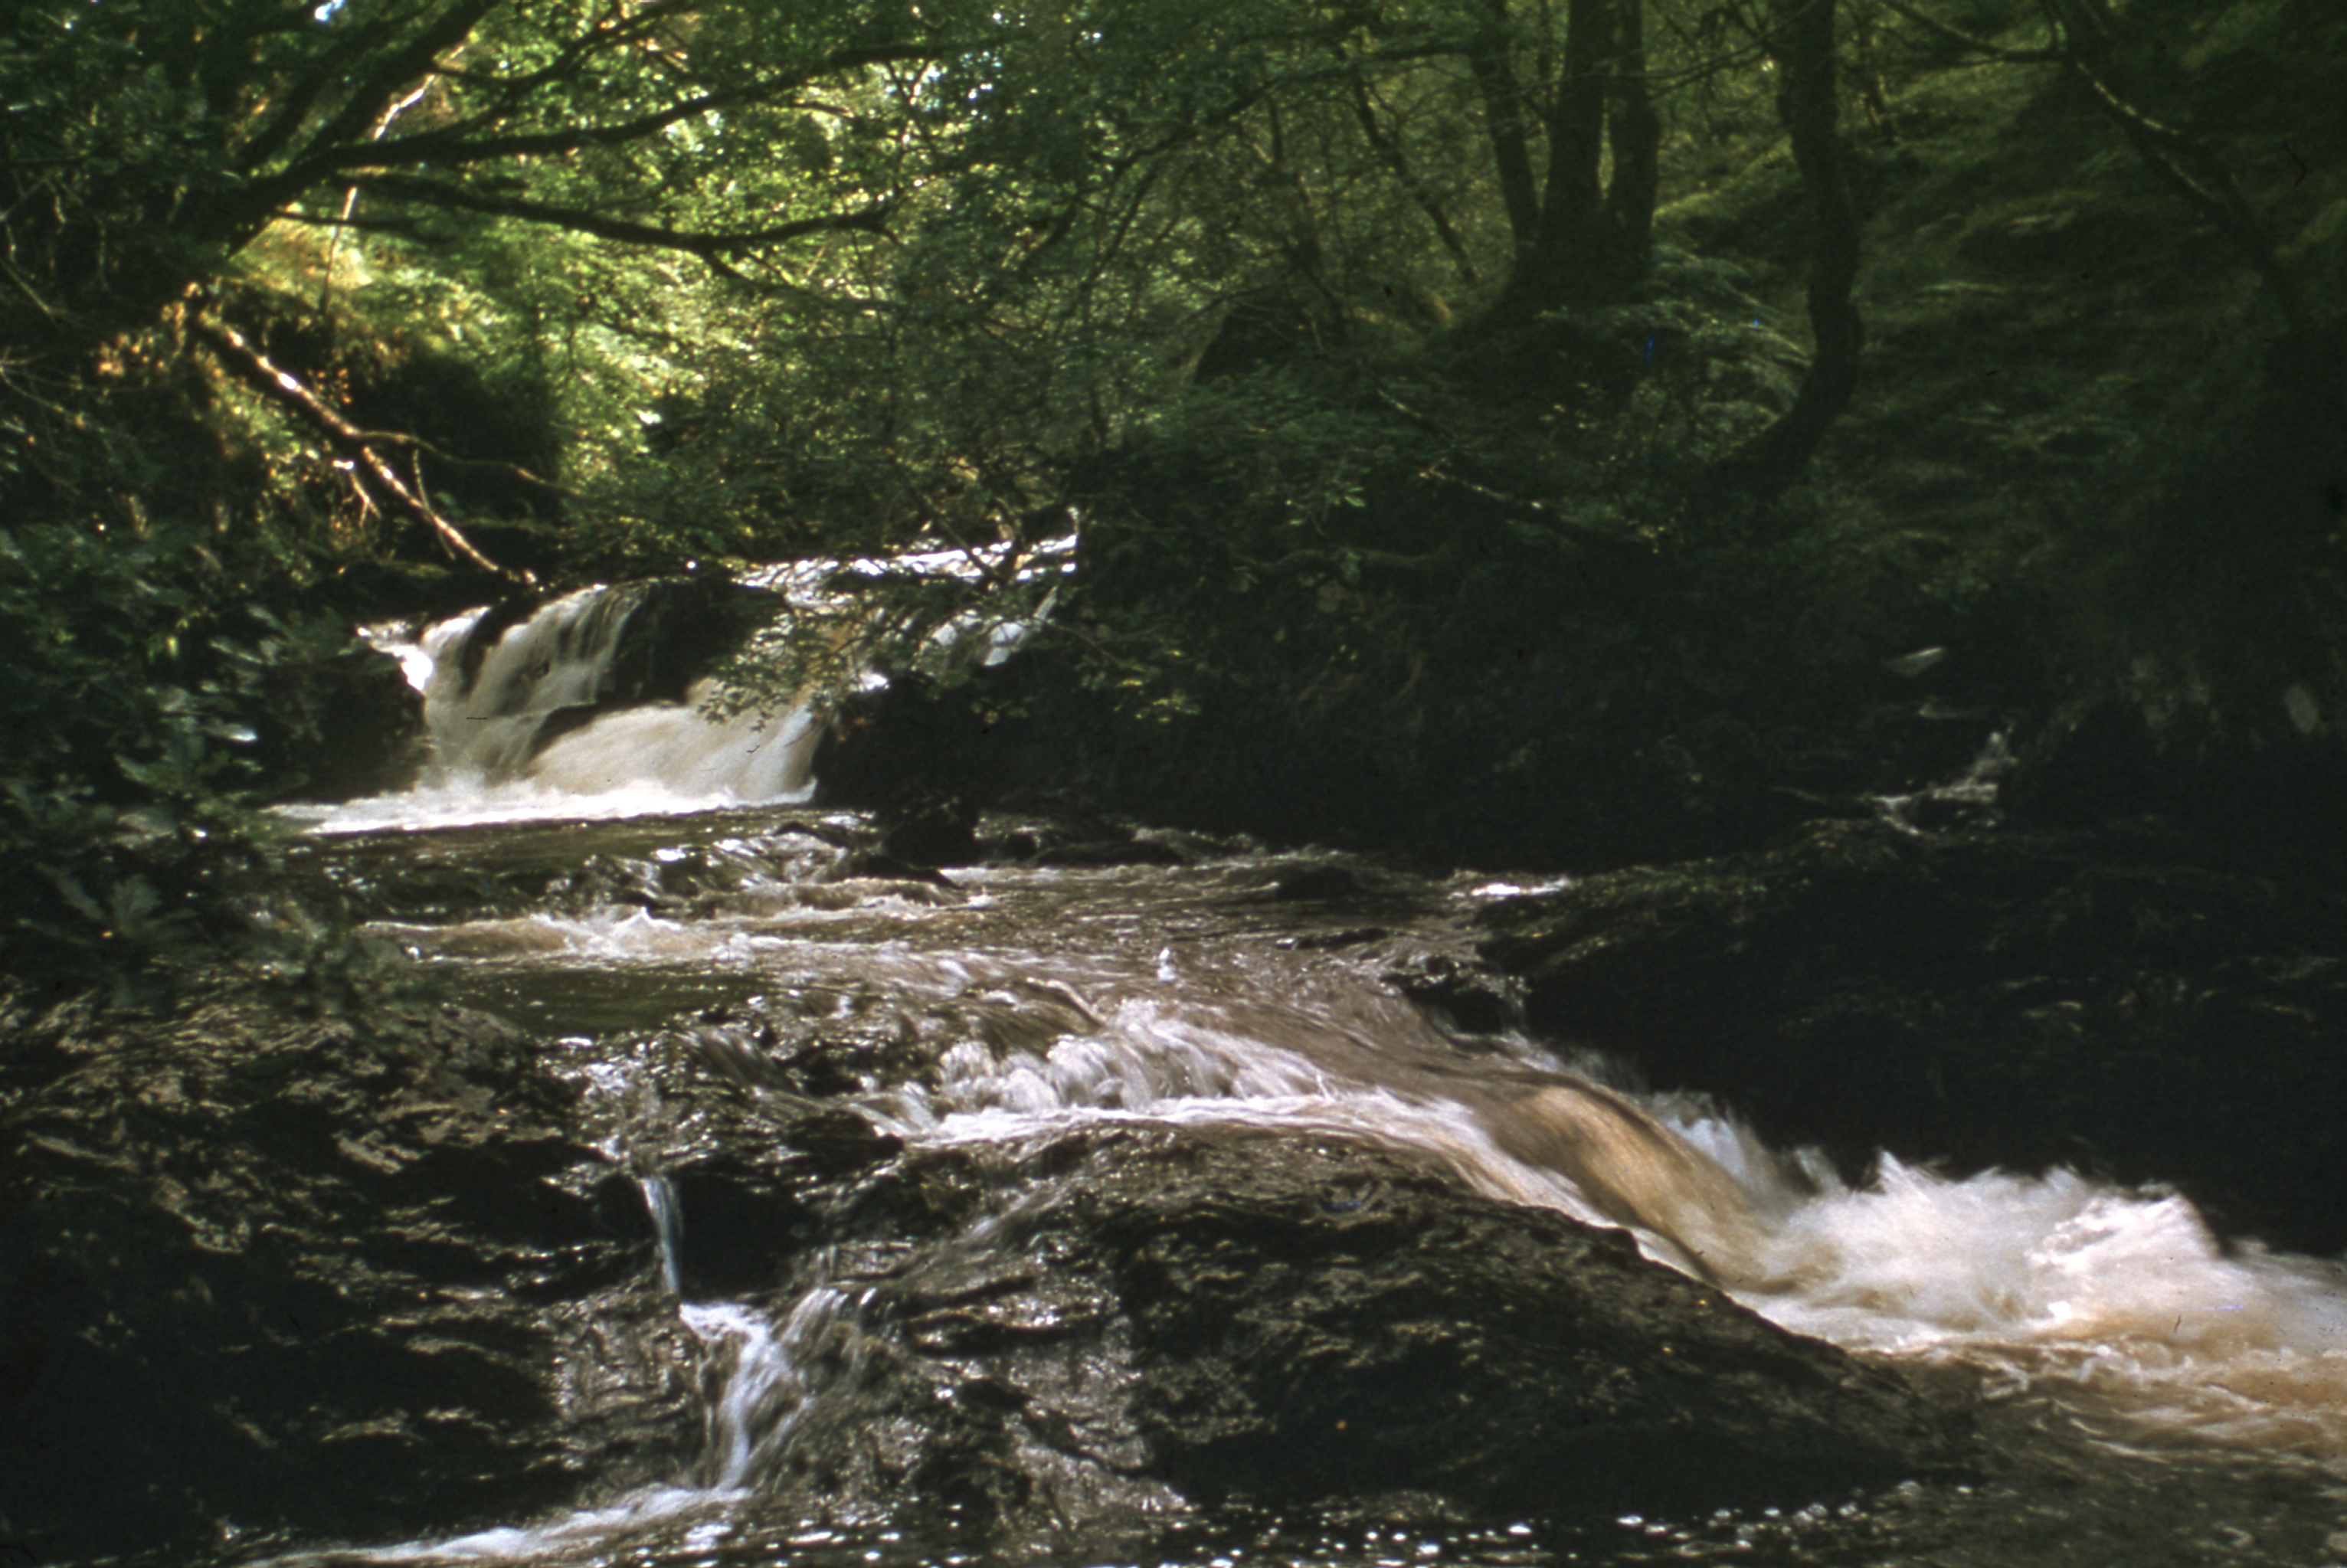 photograph of Inversnaid Falls upstream, with Ash & Fern